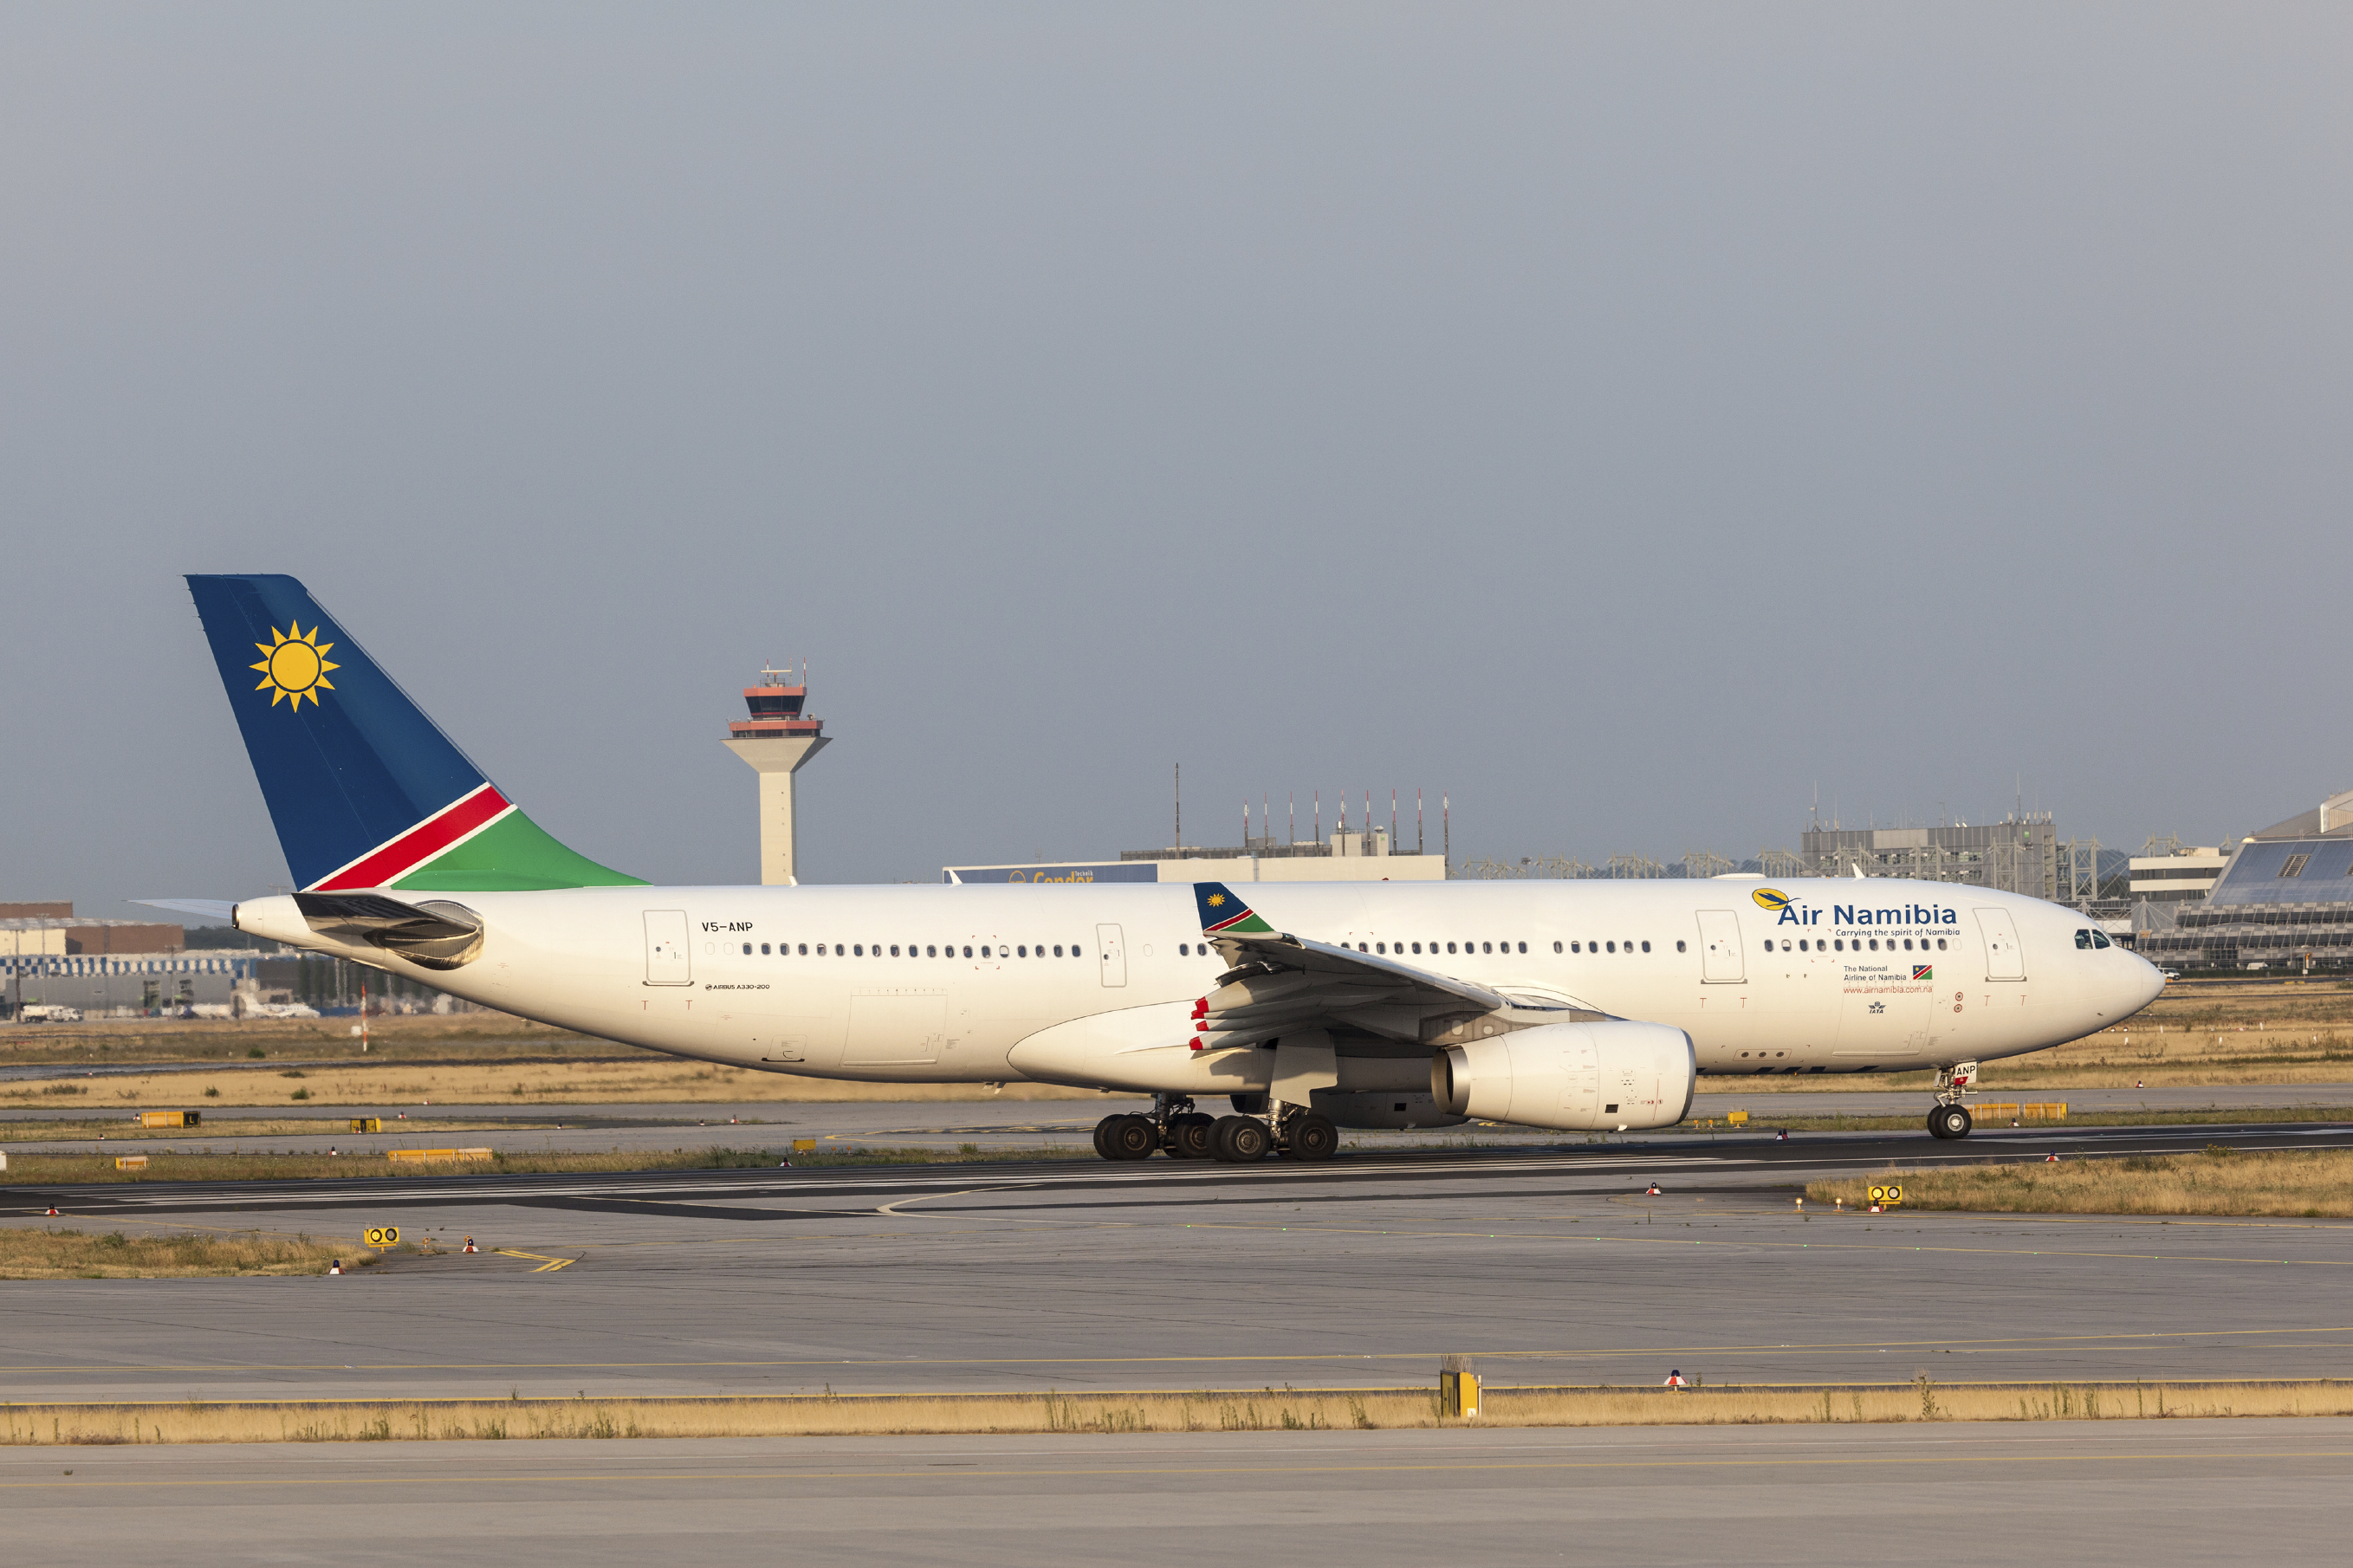 Air Namibia Airbus A330-200 at the Frankfut Airport